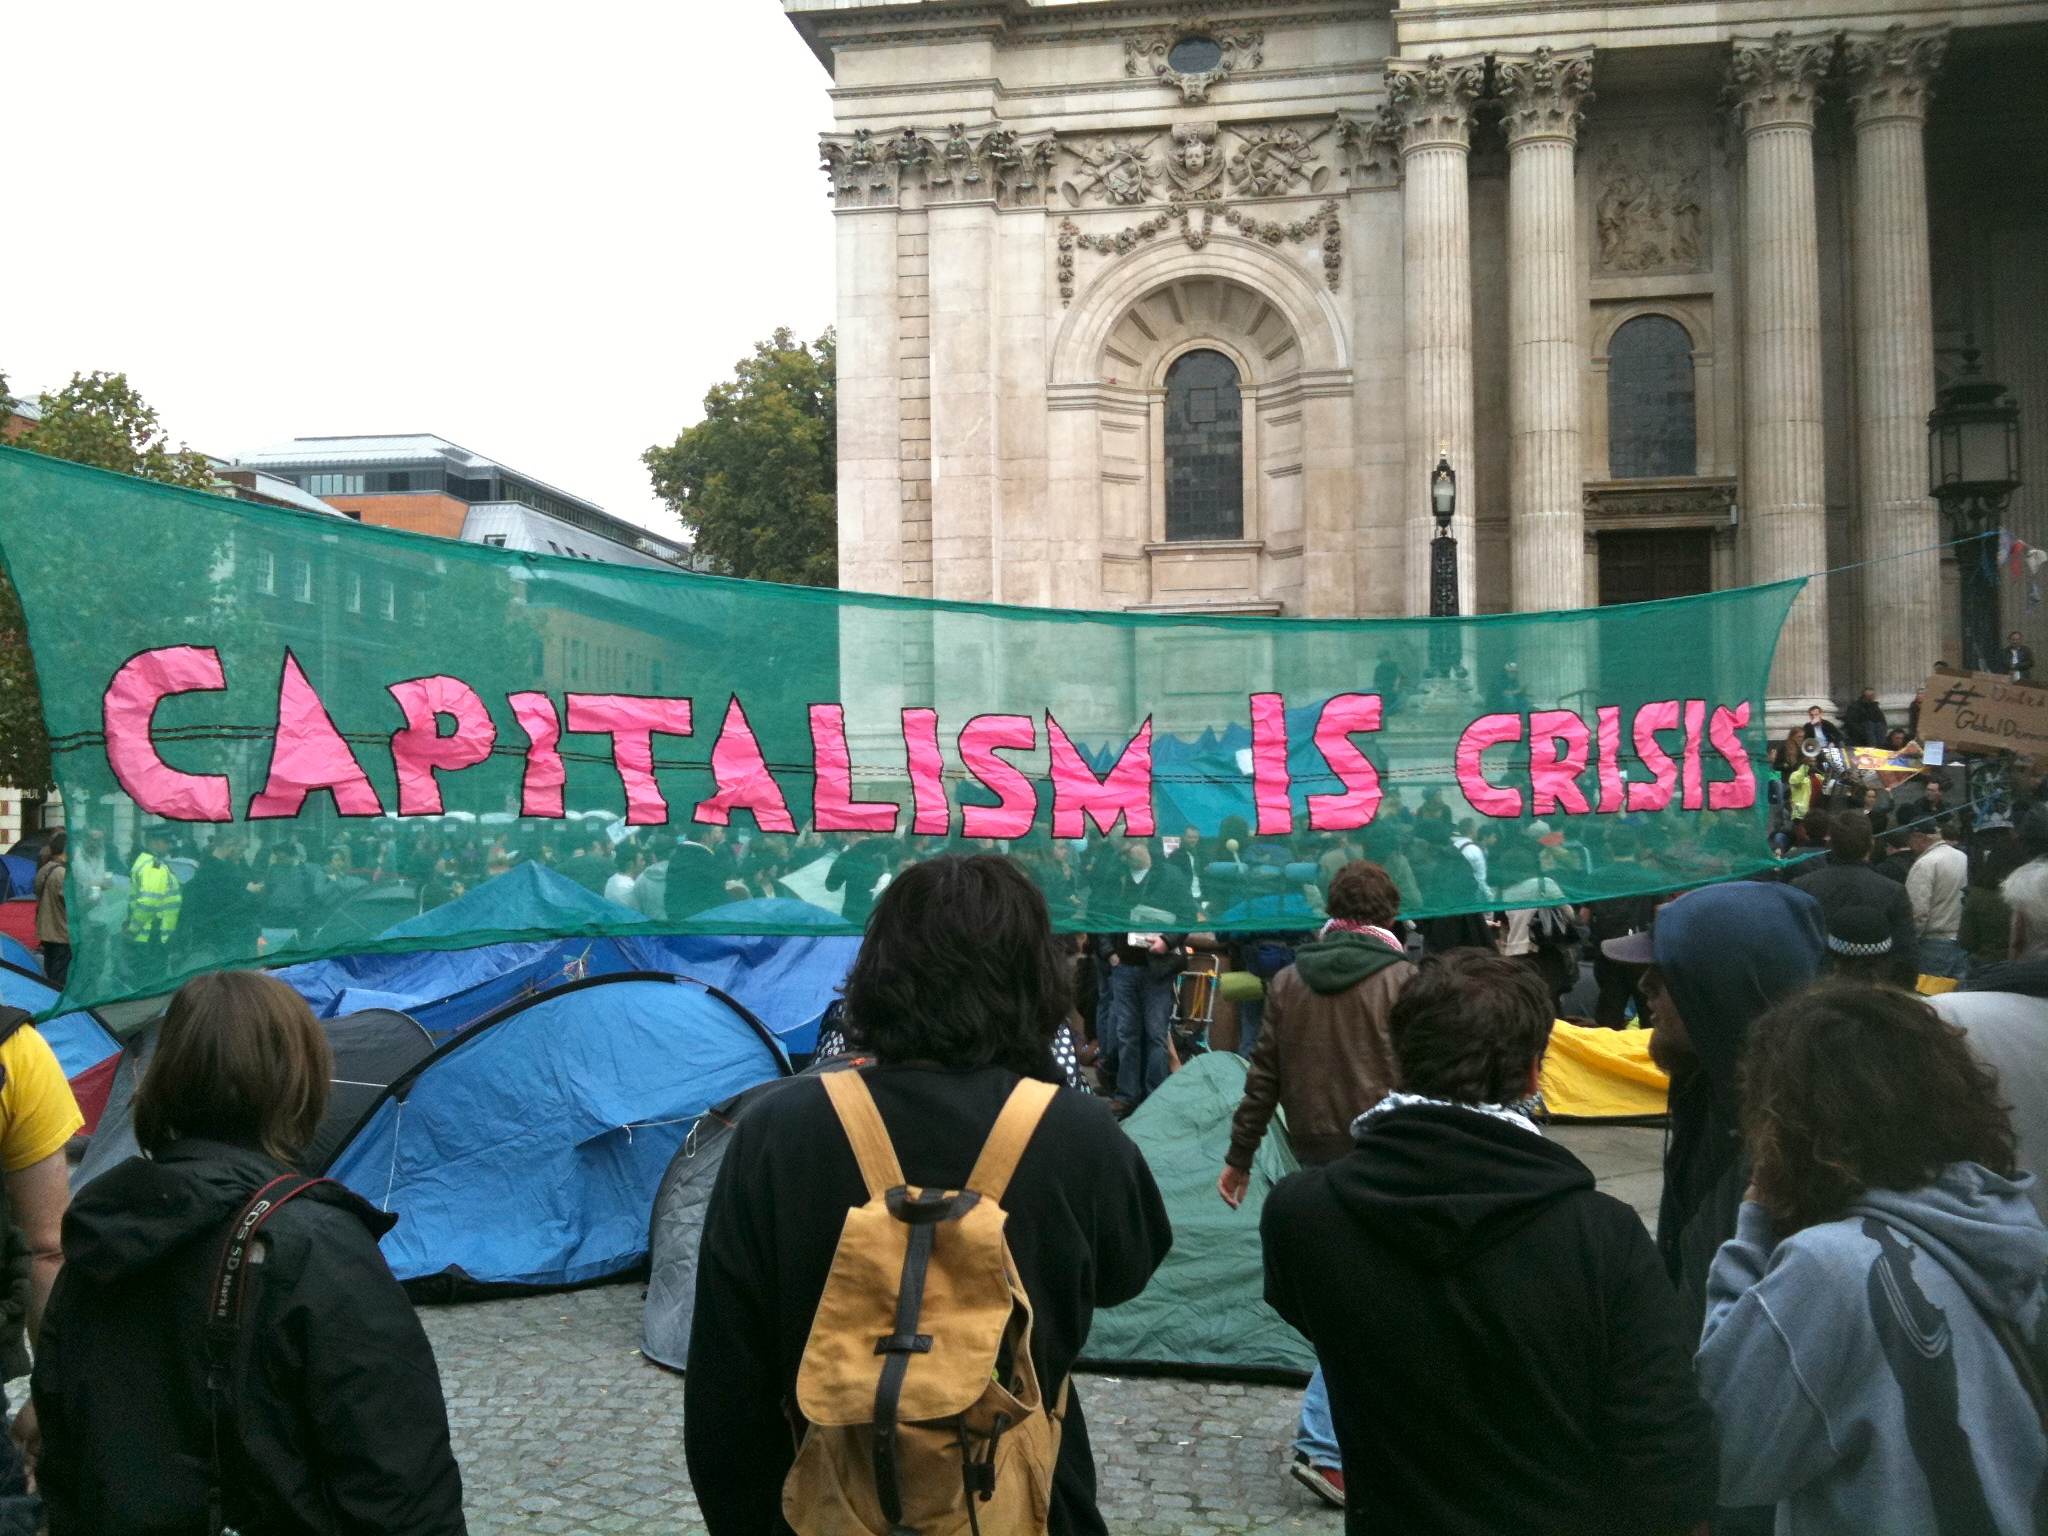 A large green banner stretches between tents and a crowd of people. Pink text in captial letters reads 'CAPITALISM IS CRISIS'